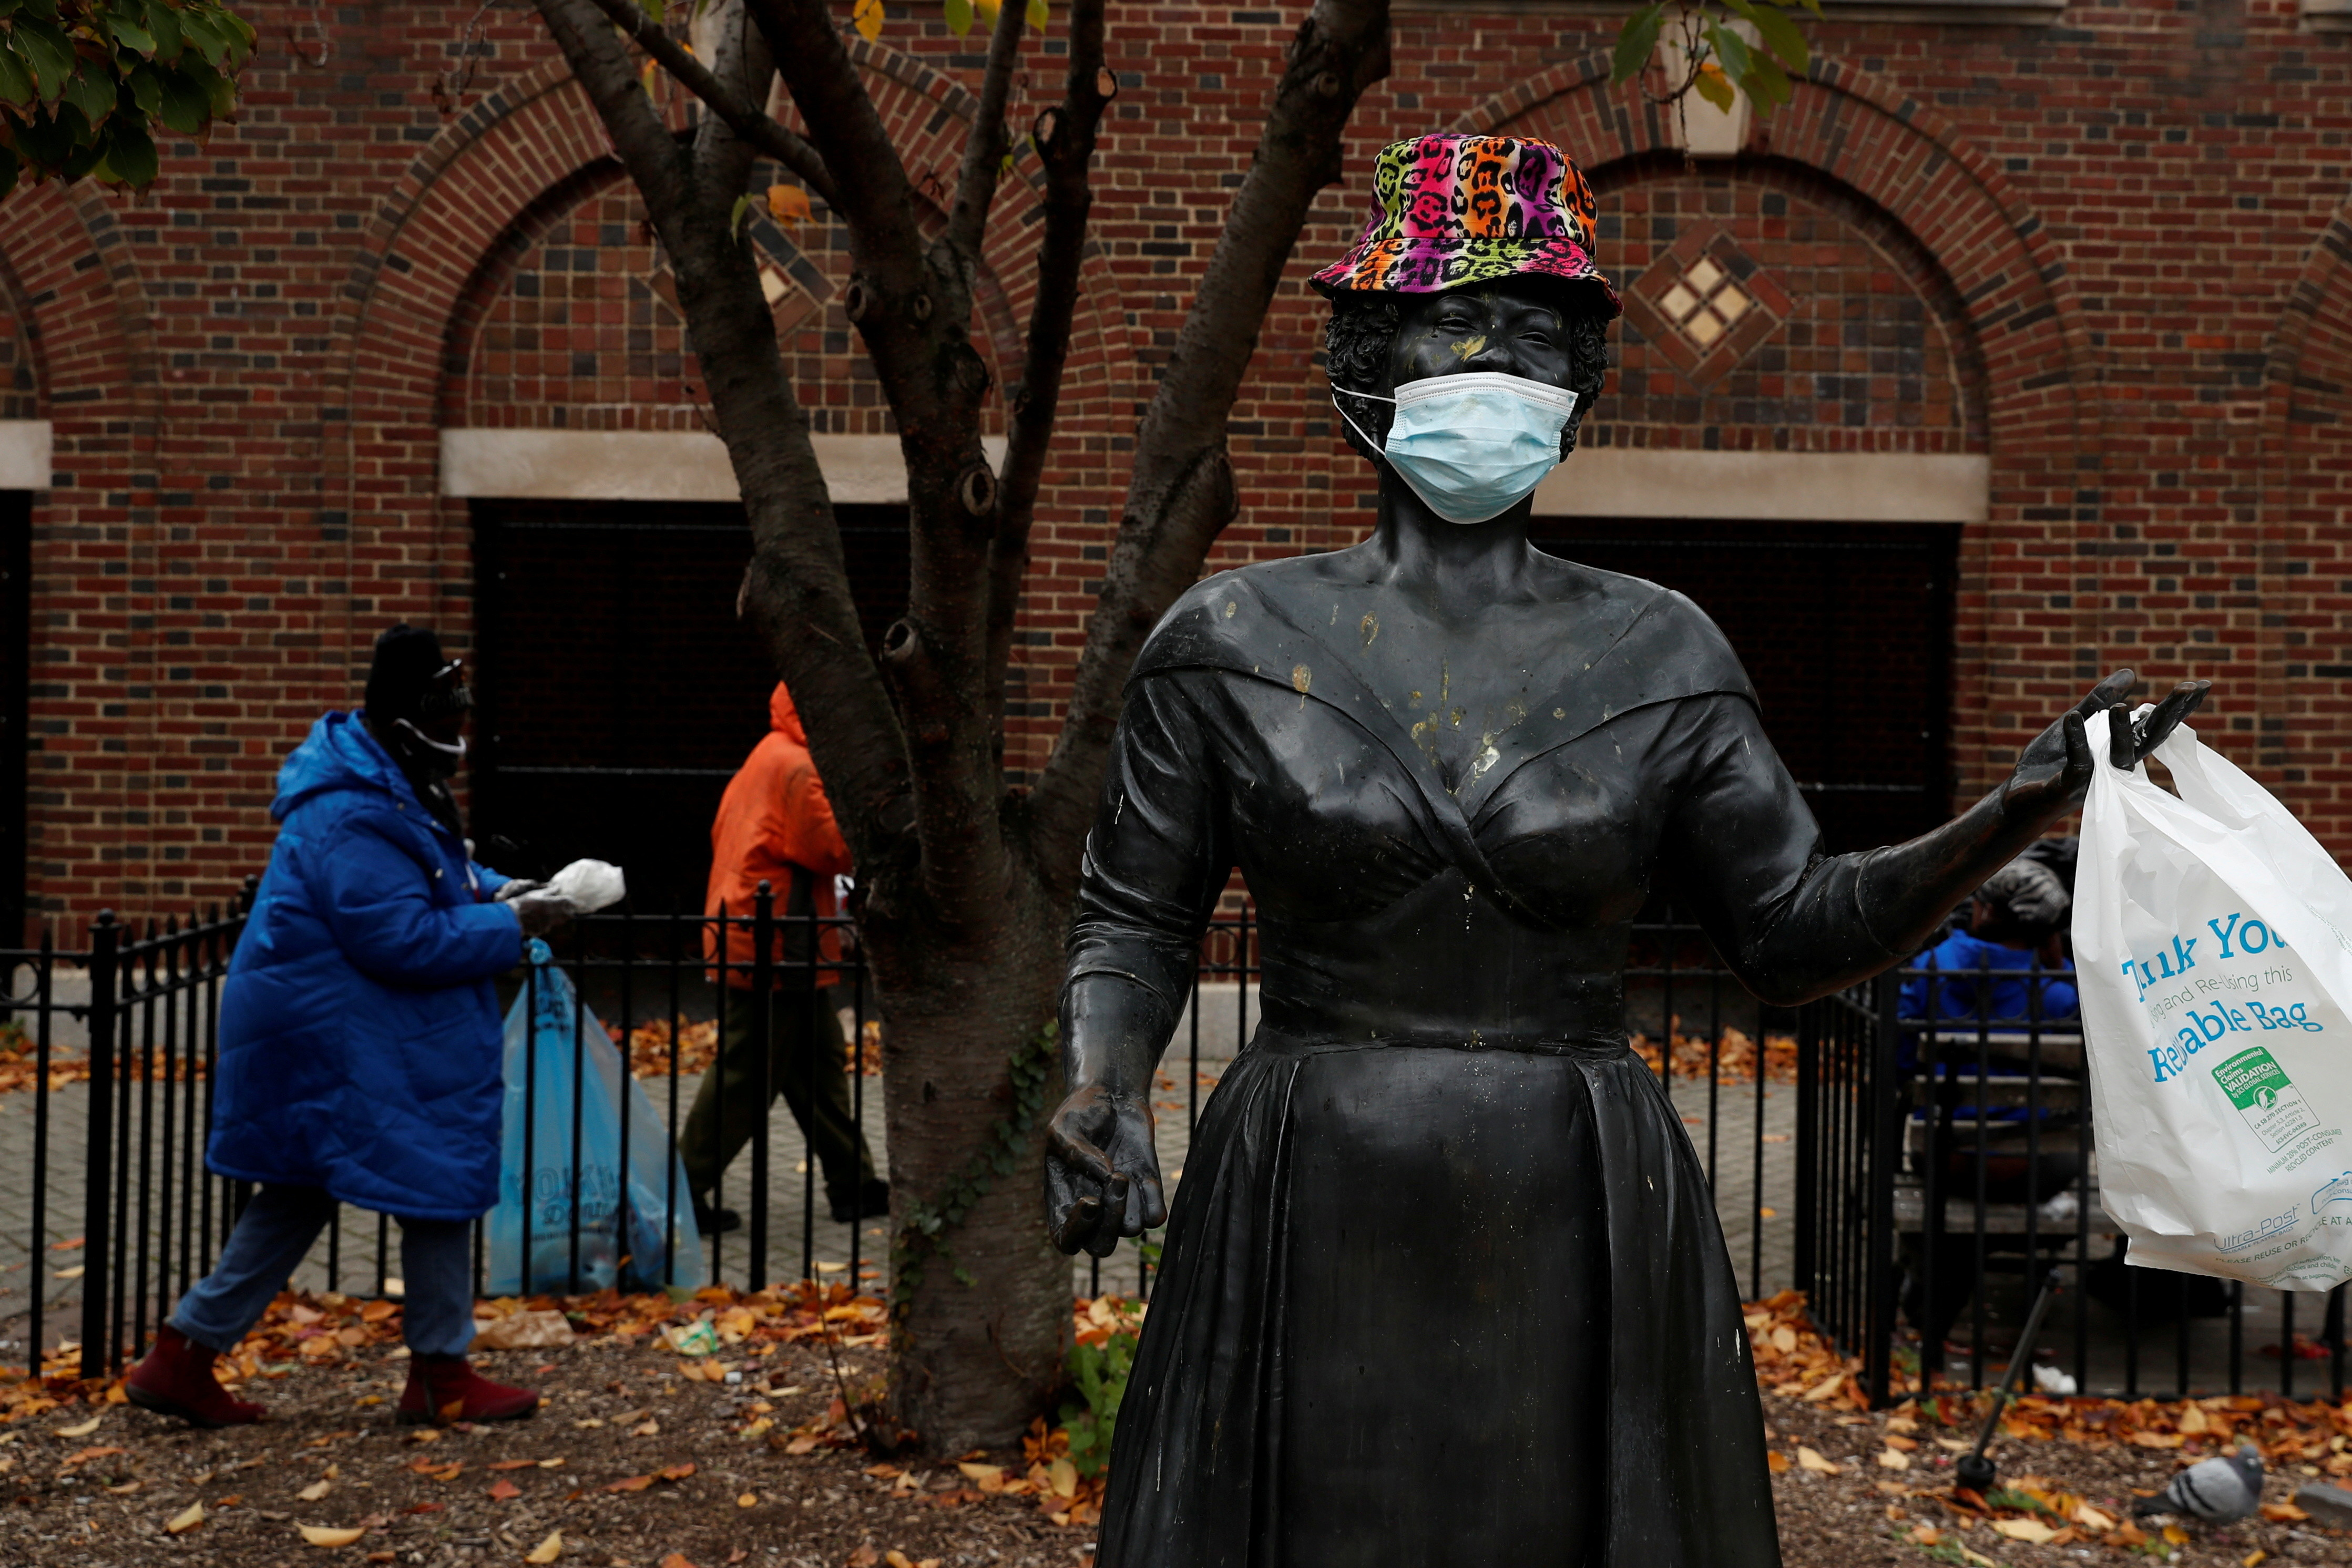 A bronze statue of late singer Ella Fitzgerald is seen wearing a hat and protective face mask, as the global outbreak of the coronavirus disease (COVID-19) continues, outside the Metro-North Railroad Station Plaza in Yonkers, New York, U.S., November 17, 2020. REUTERS/Shannon Stapleton     TPX IMAGES OF THE DAY - RC2B5K976NMW